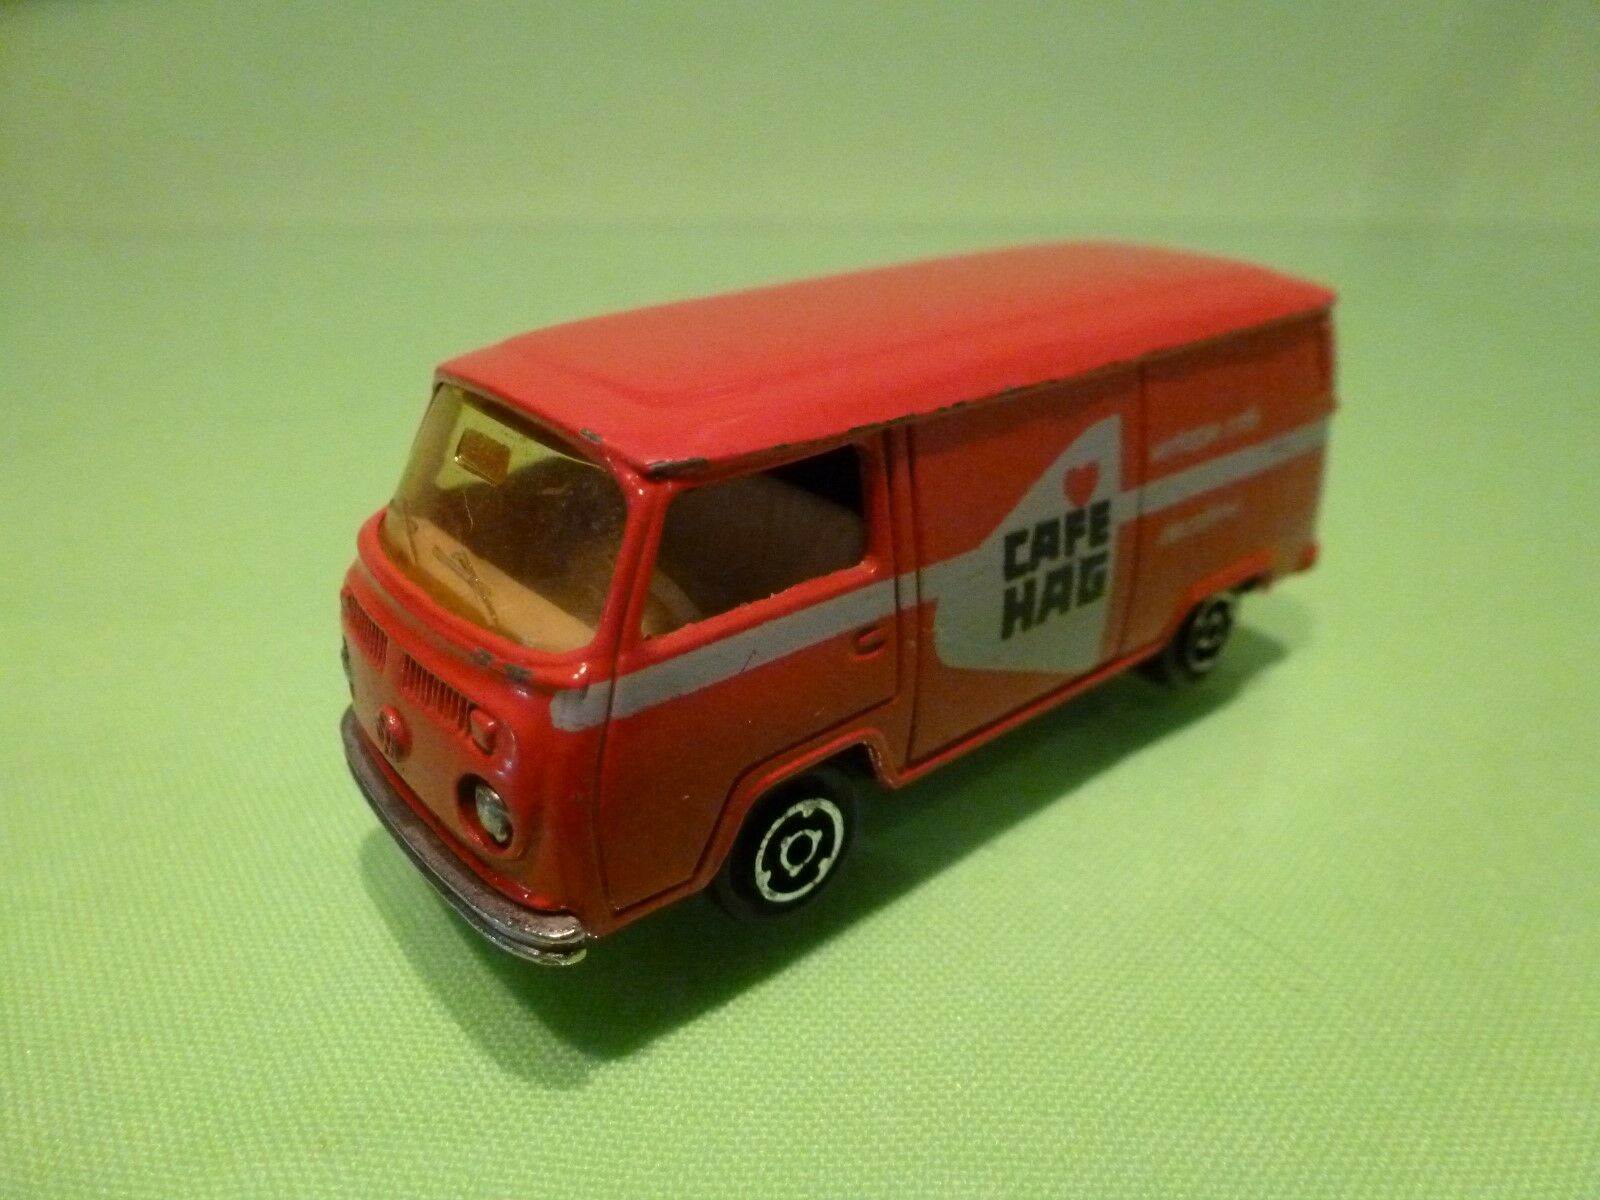 MAJORETTE 1 60  VOLKSWAGEN T2  FOURGON FOURGON FOURGON   -  CAFE HAG  - GOOD CONDITION d2c0d5